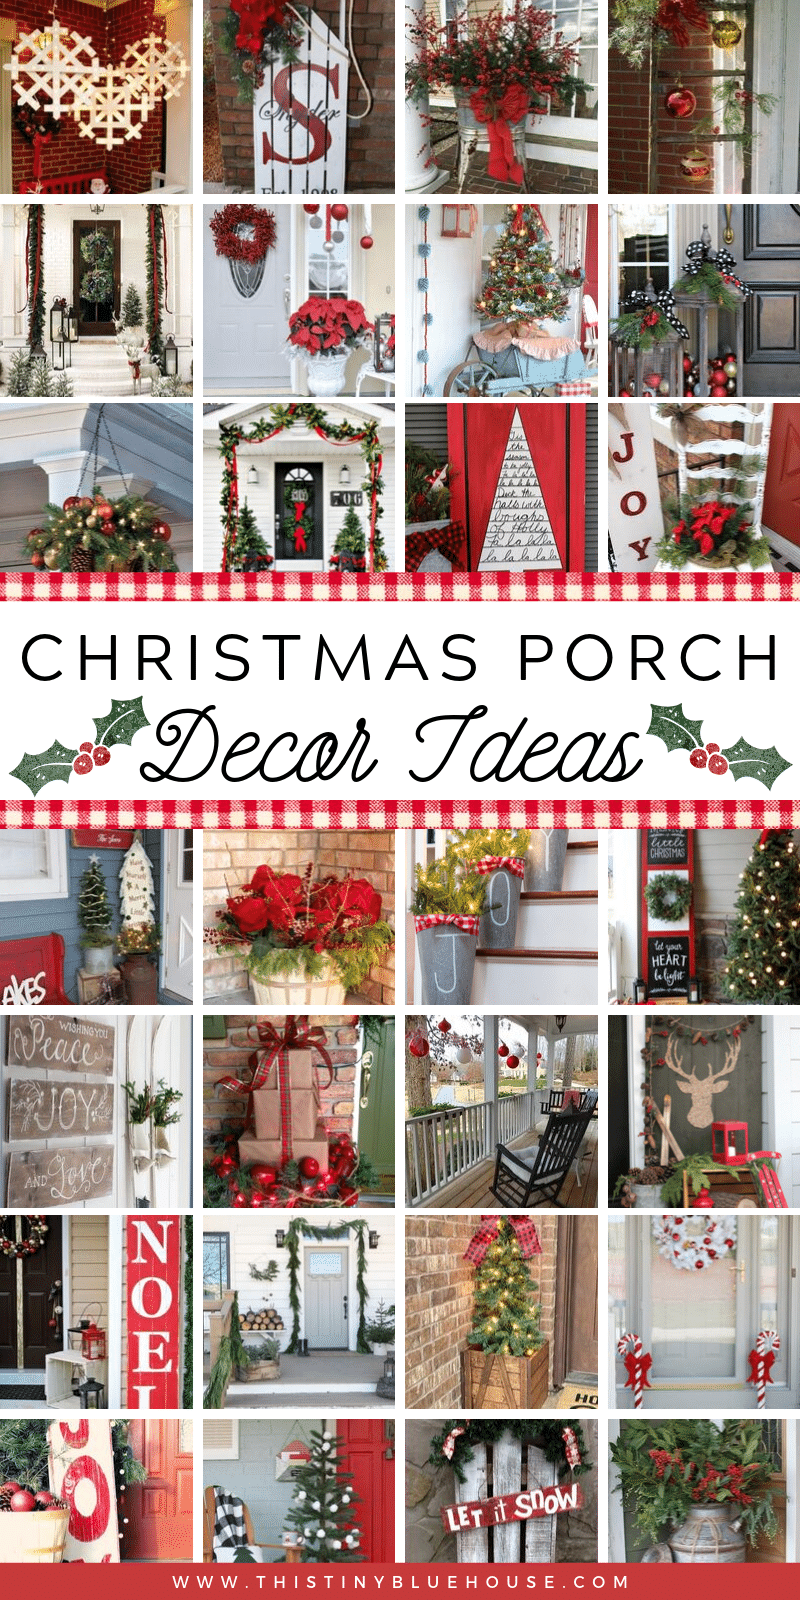 Glam up your porch this Christmas with these stunning festive Christmas Porch Decor ideas. With over 100 festive ideas to choose from you're guaranteed to become the envy of the neighborhood. #DIYChristmasDecor #DIYChristmasPorch #ChristmasPorchRustic #ChristmasPorchDIY #ChristmasPorchIdeas #EasyChristmasPorchIdeas #BestChristmasPorchIdeas DIYChristmasPorchDecor